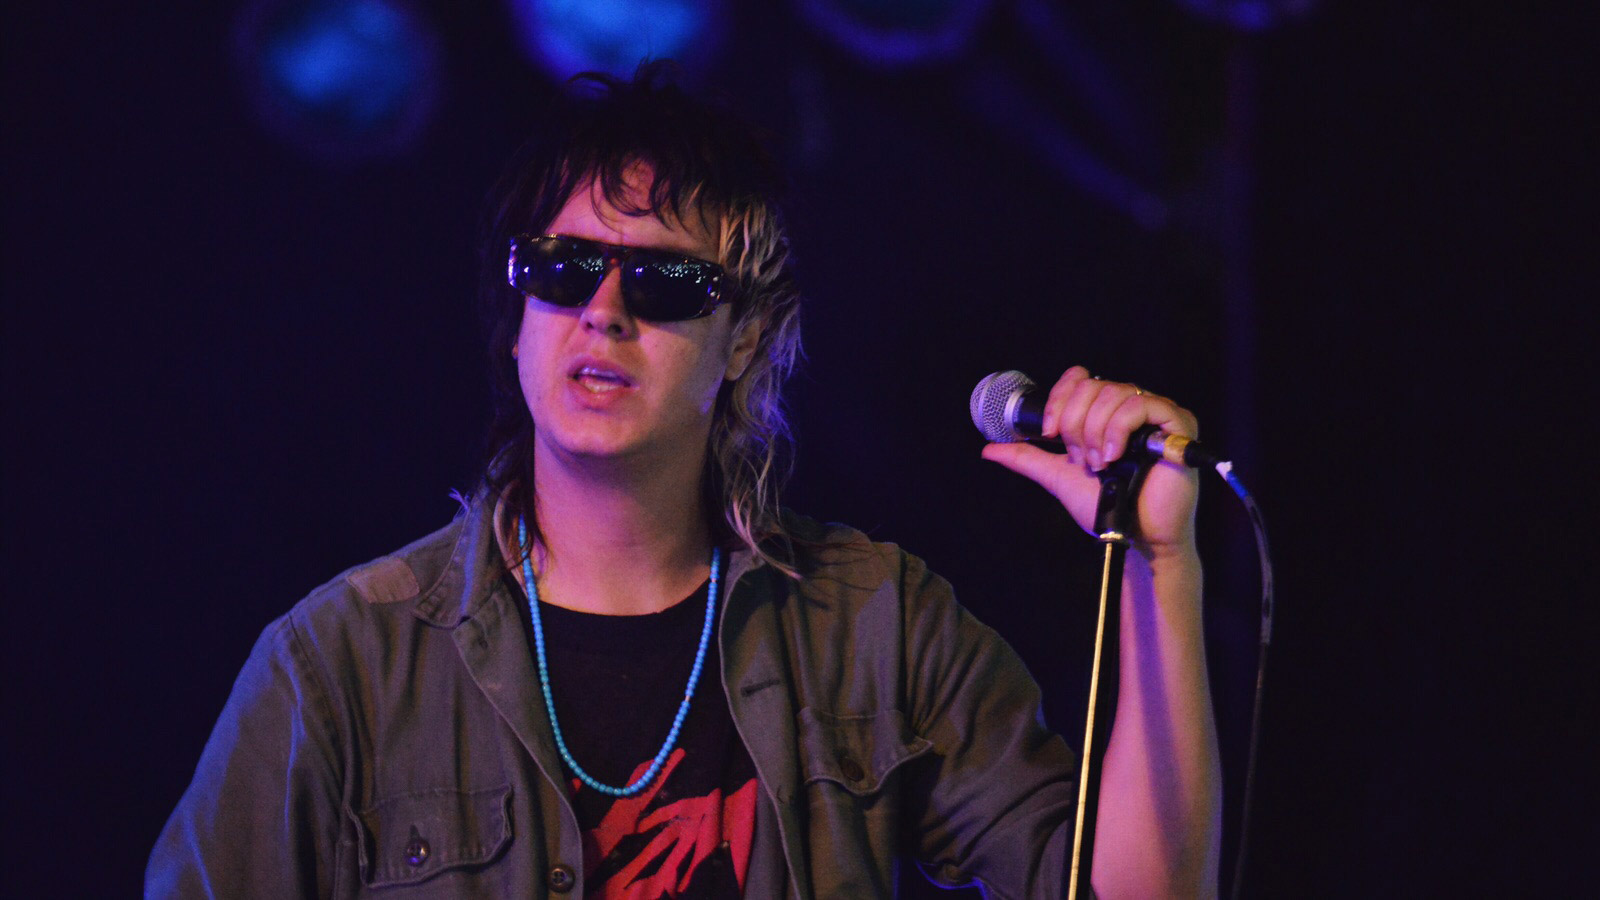 The-Strokes-Mexico-Monterrey-Live-Out-Festival-2015-3